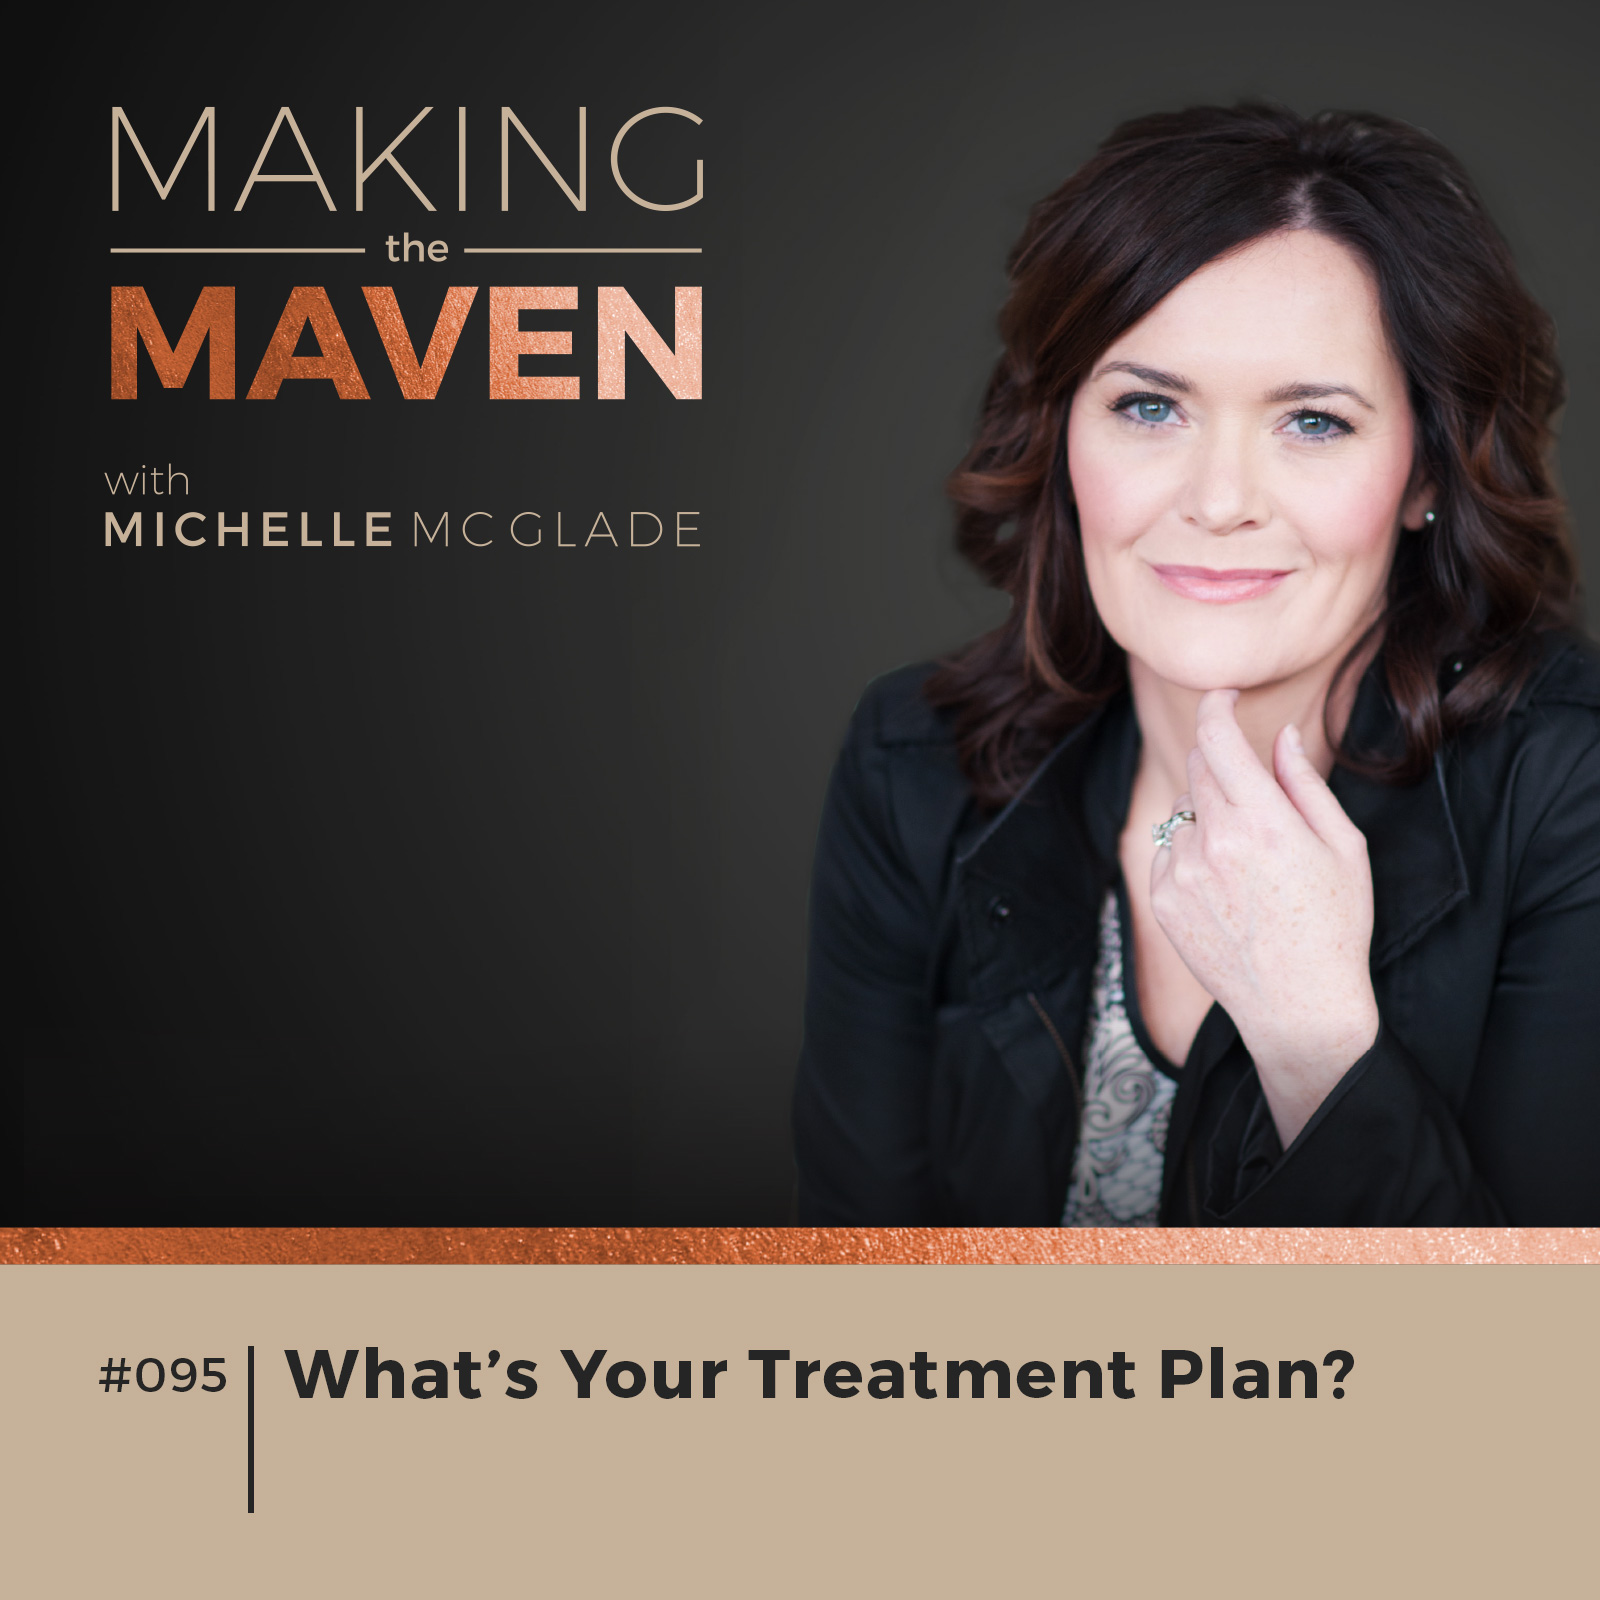 What's Your Treatment Plan